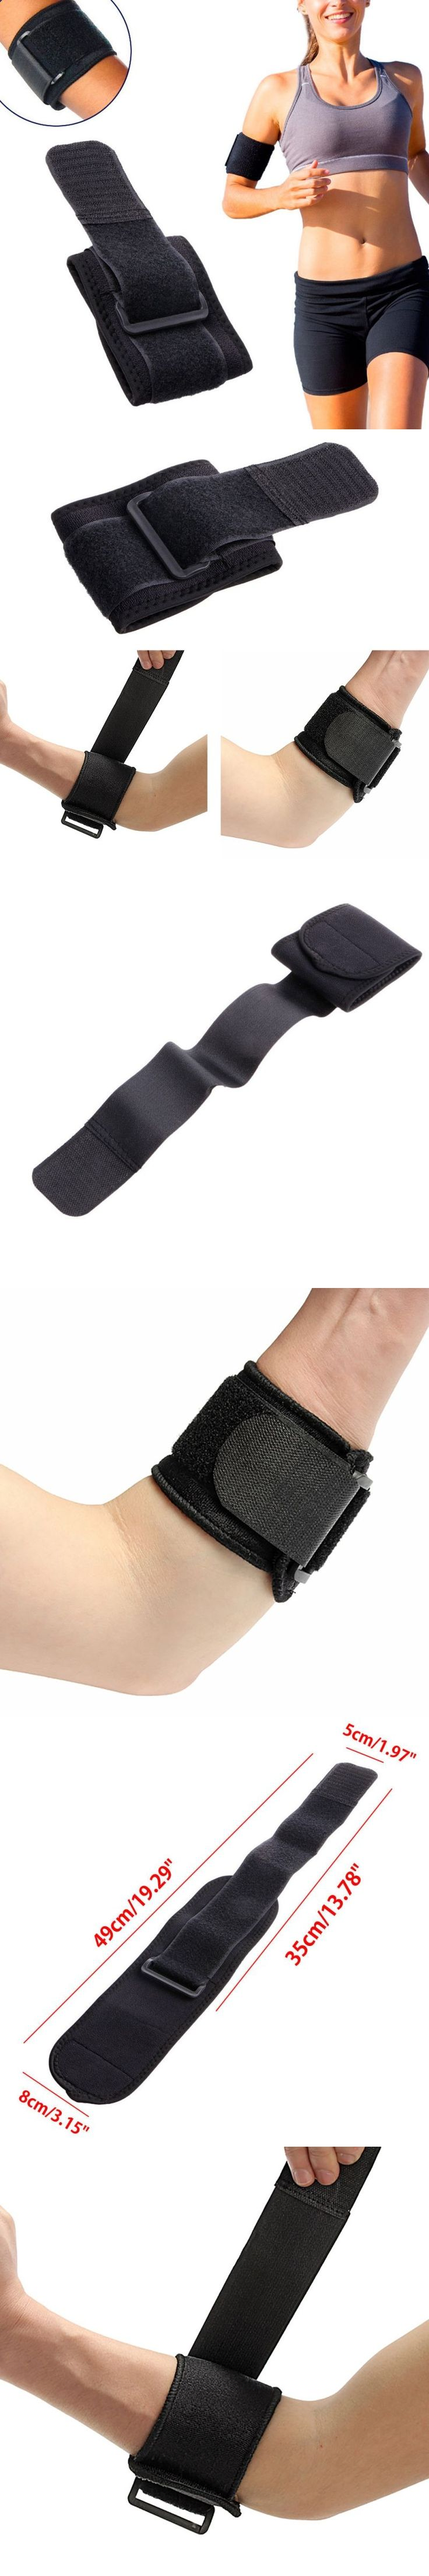 Black Adjustable Tennis Fitness Elbow Support Strap Pad Sport Golf Pain Forearm Support Band knee Wraps